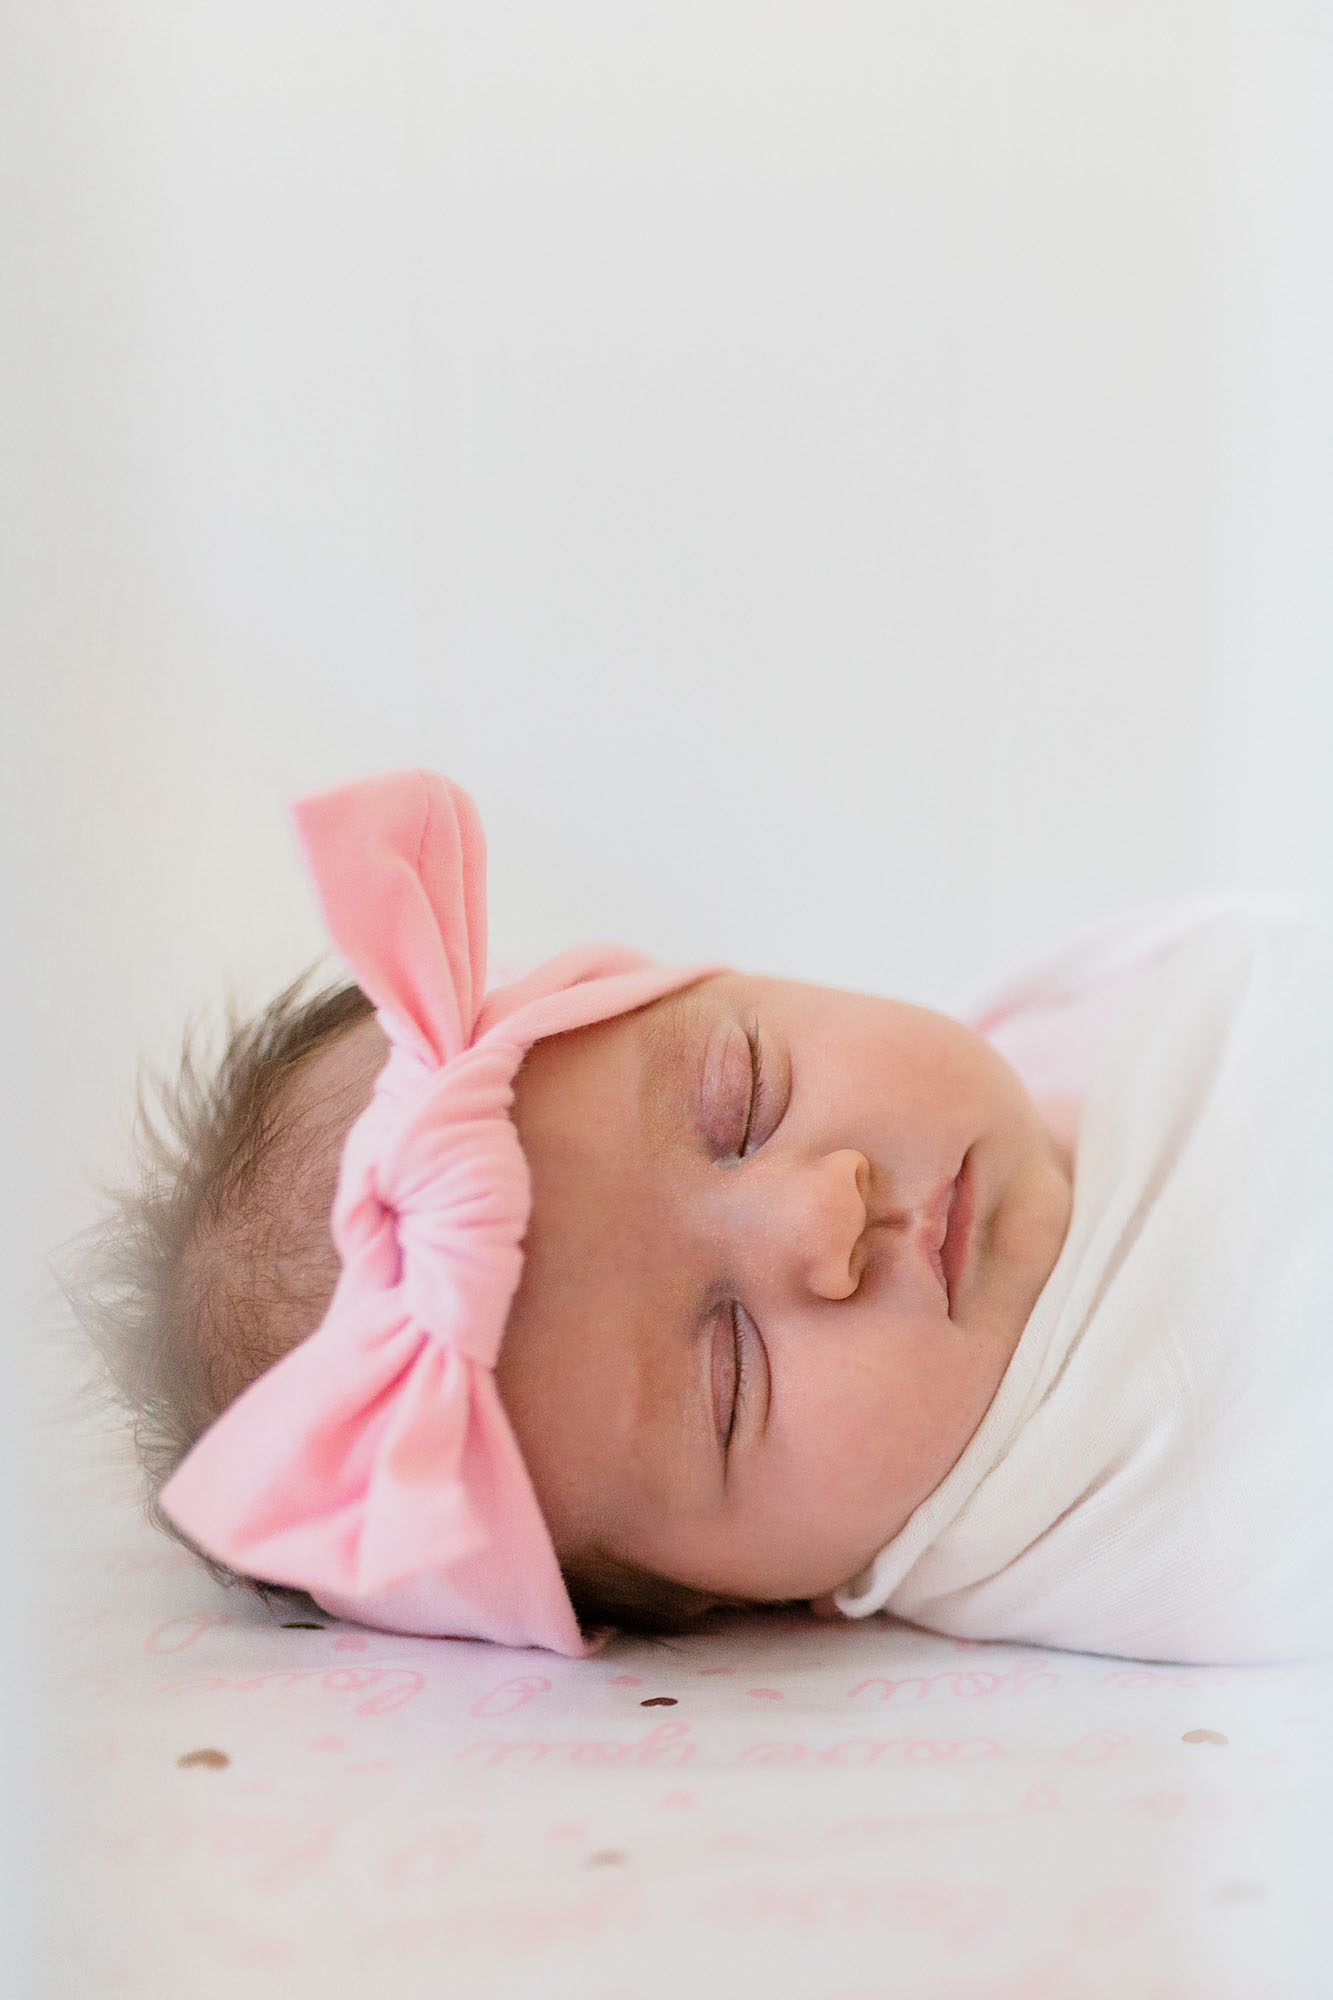 A sweet portrait is taken of a sleeping newborn baby during an in-home newborn photo session with Amy Wright Photography in Roseville, California.